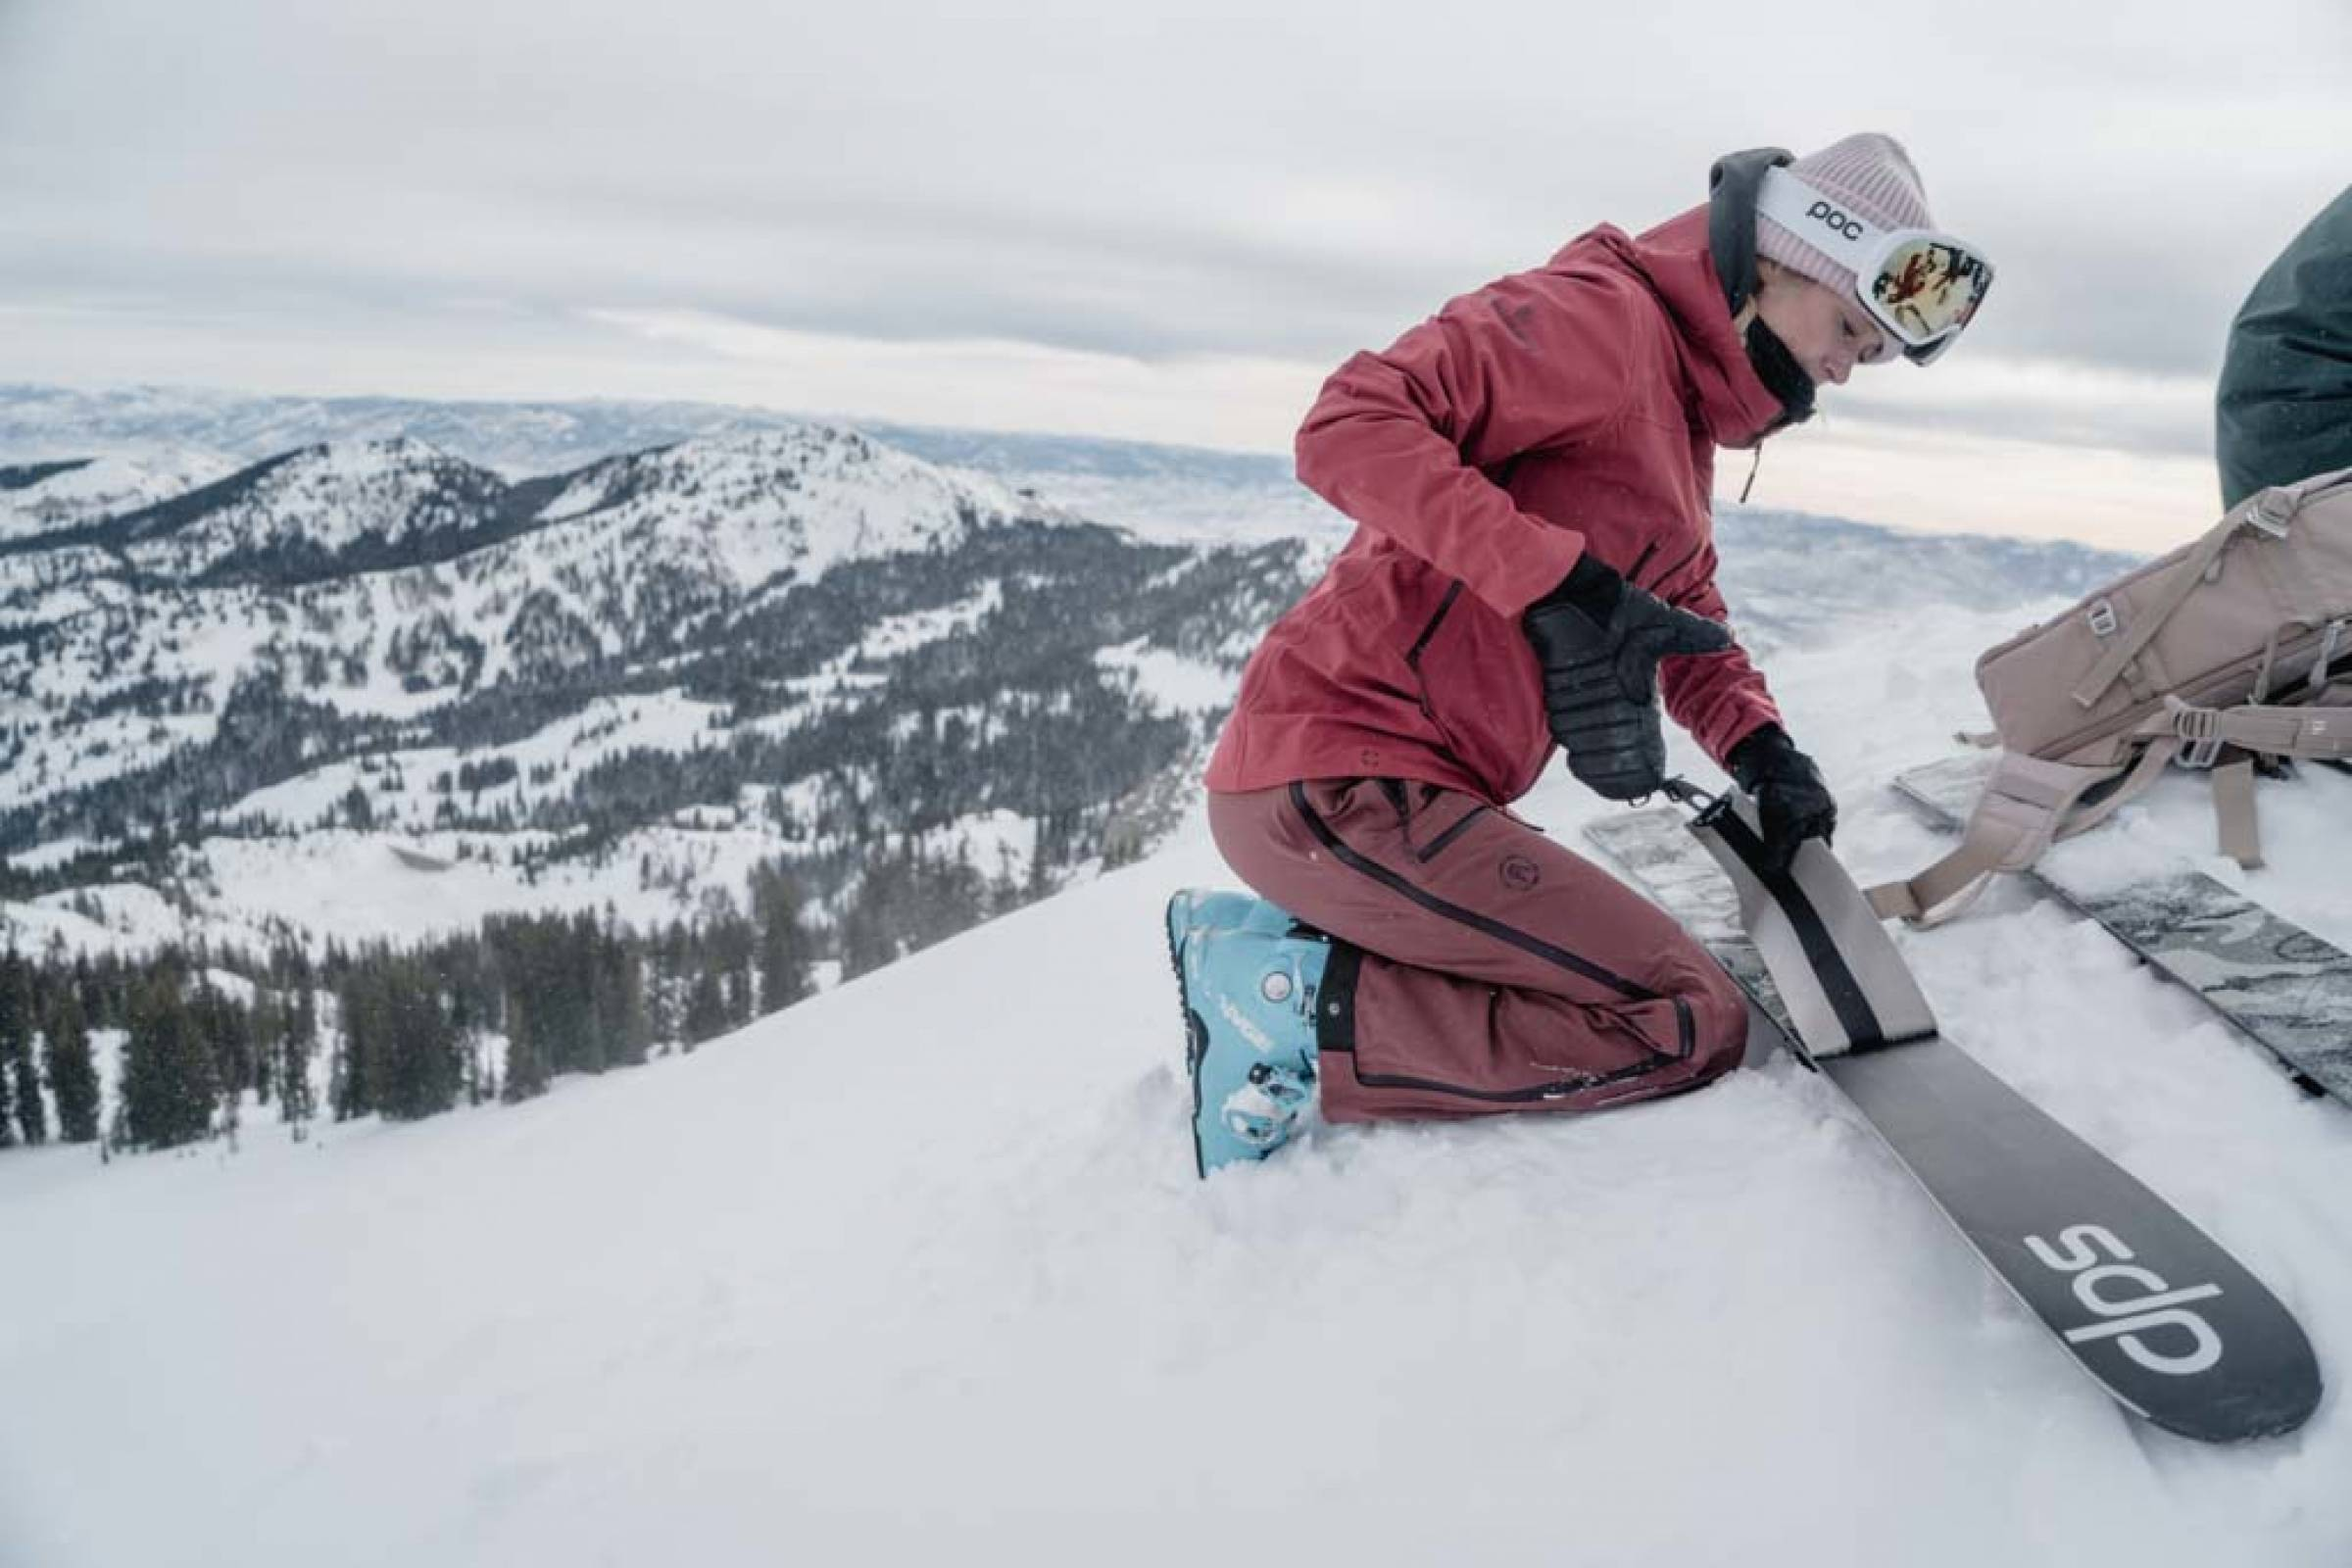 Backcountry Skier Removing Skins in Mountains